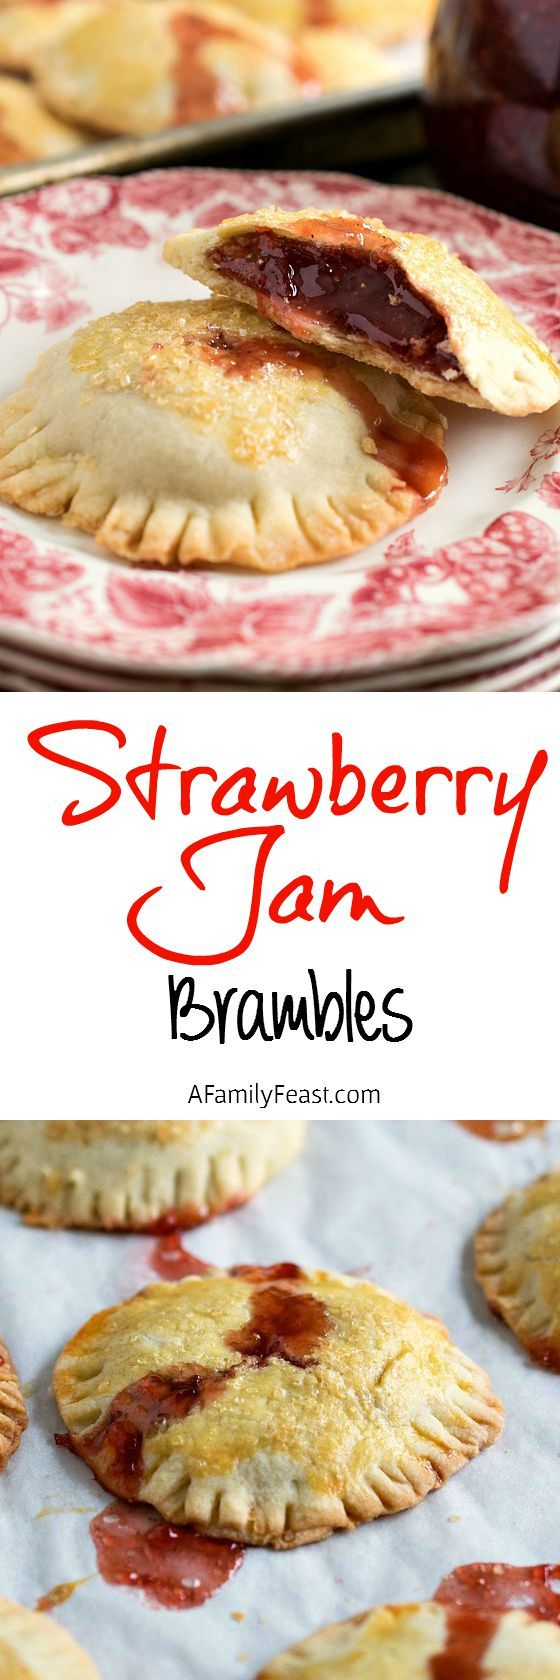 Strawberry Brambles – or hand pies - are delicious, little sweet treats with a flaky crust and filled with your favorite strawberry jam. So good!